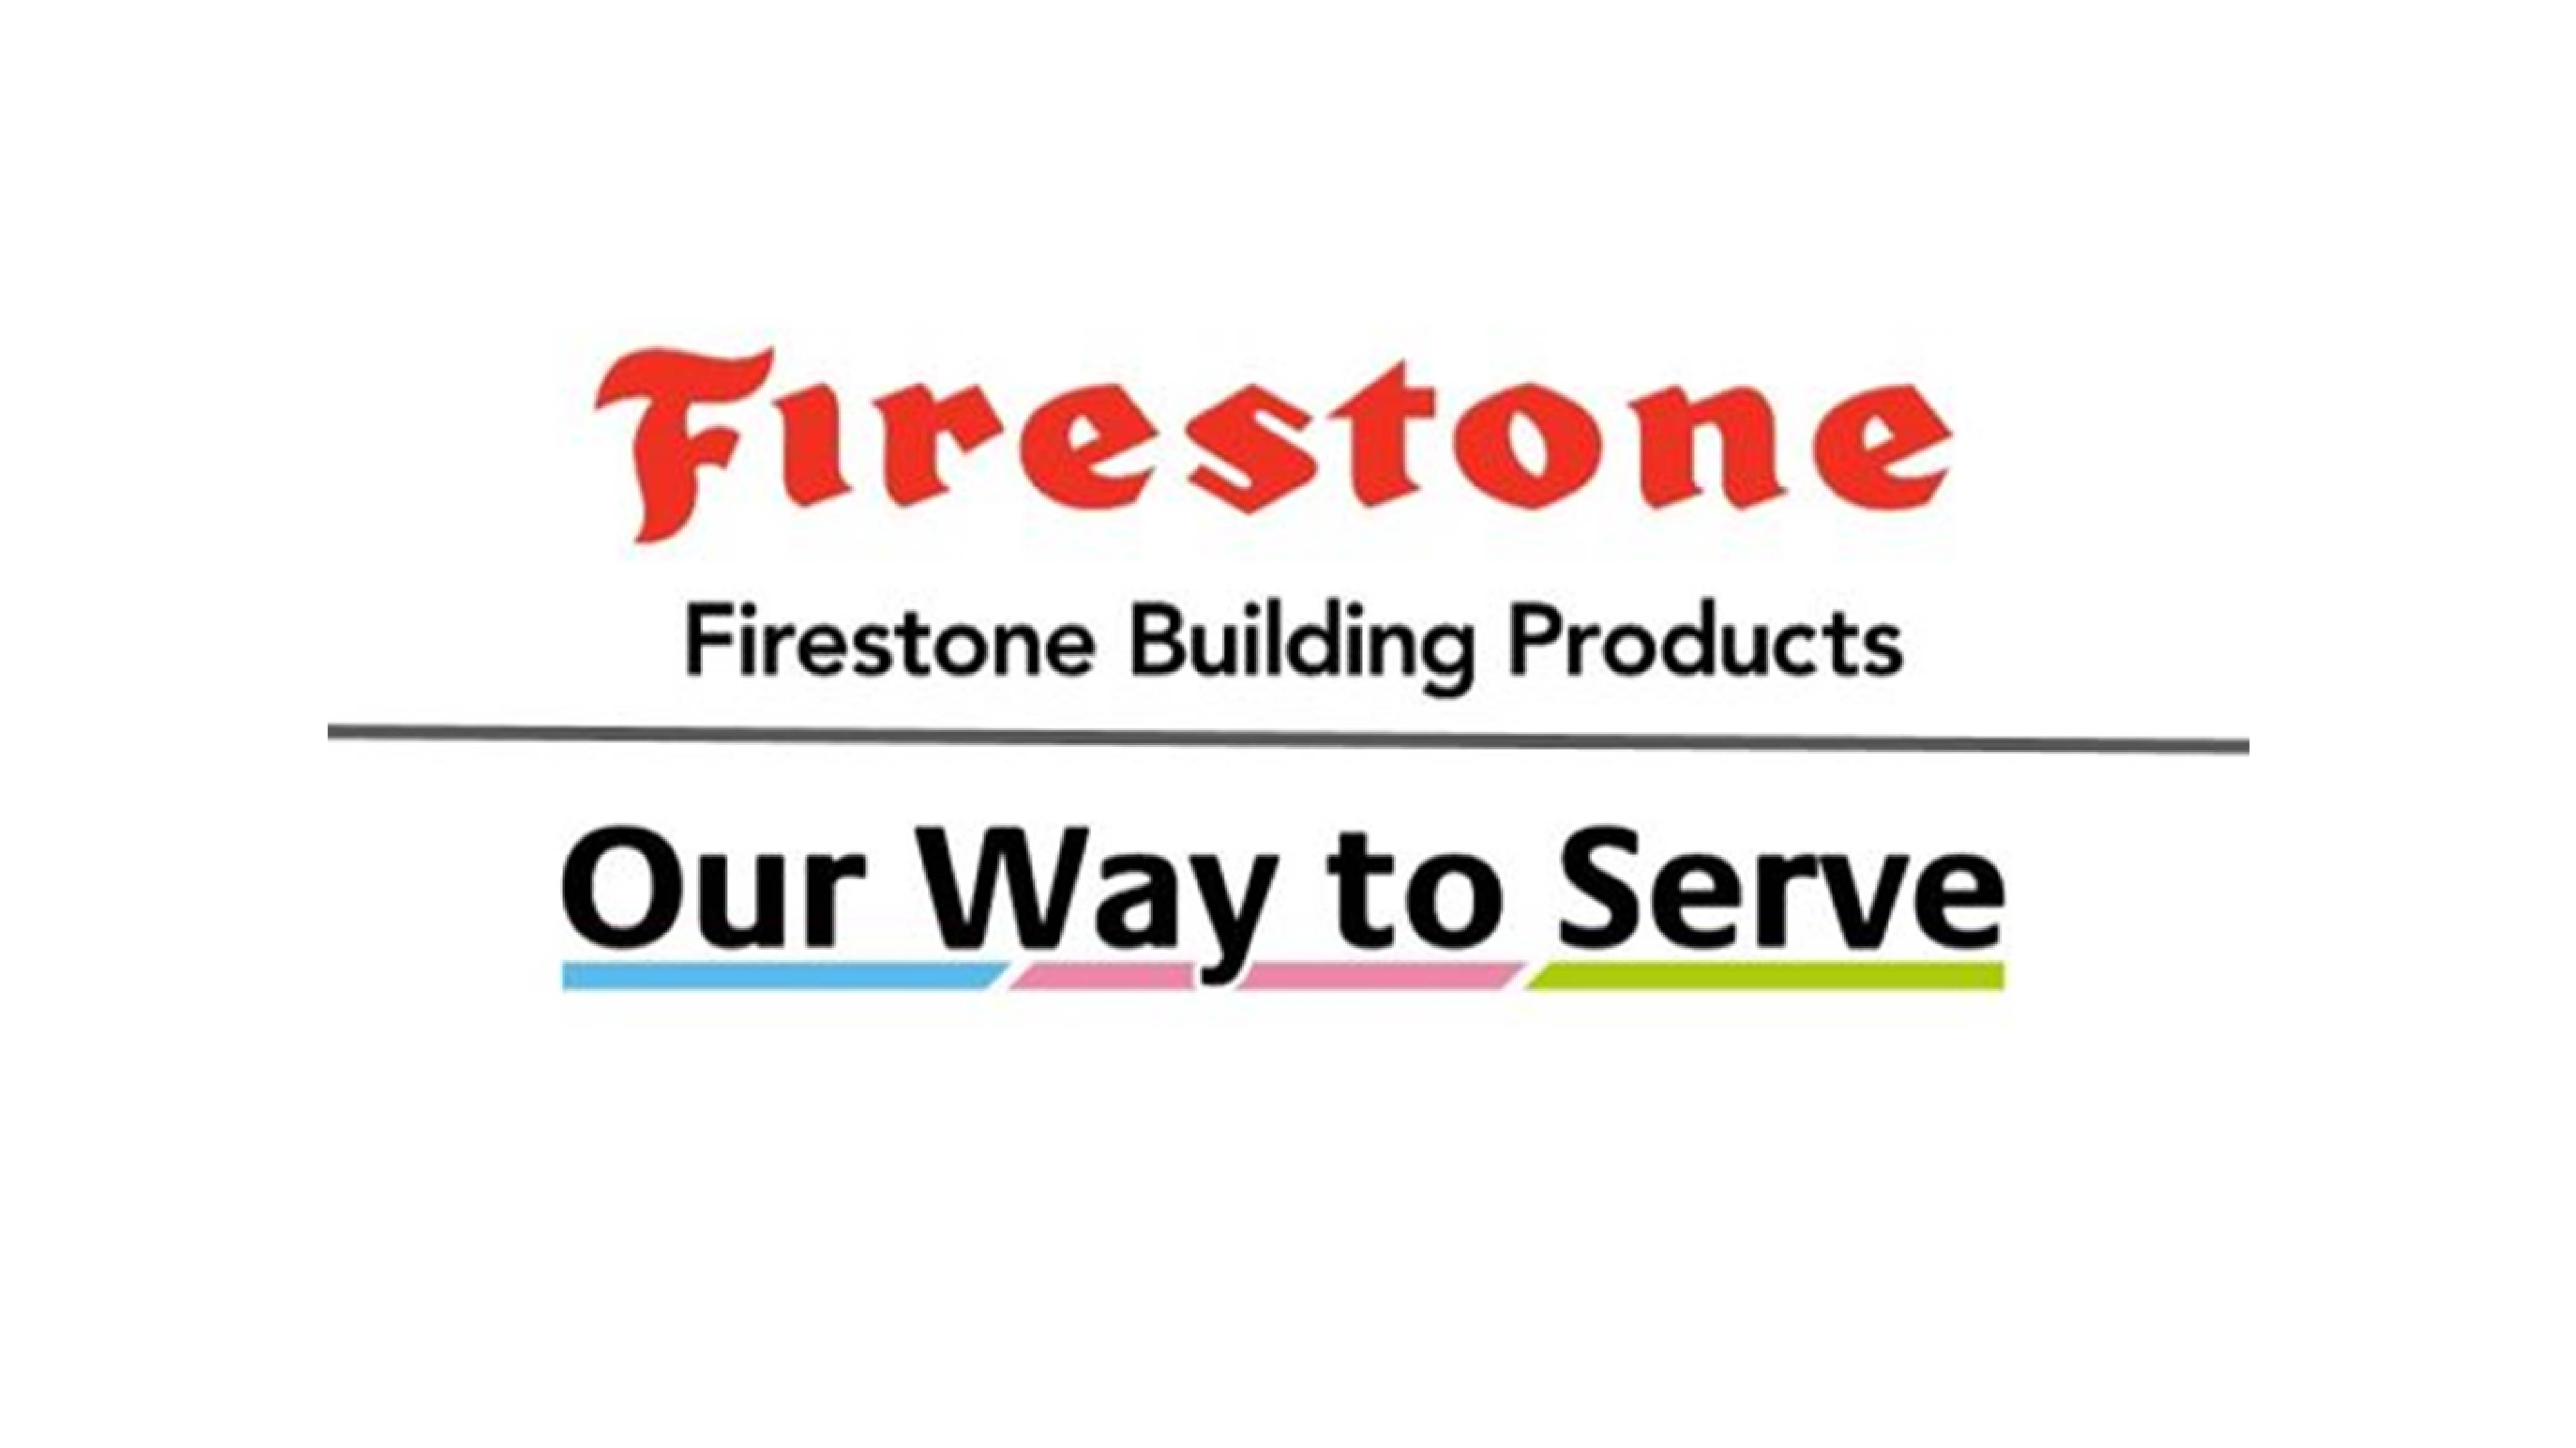 Firestone Building Products Our Wayt to Serve